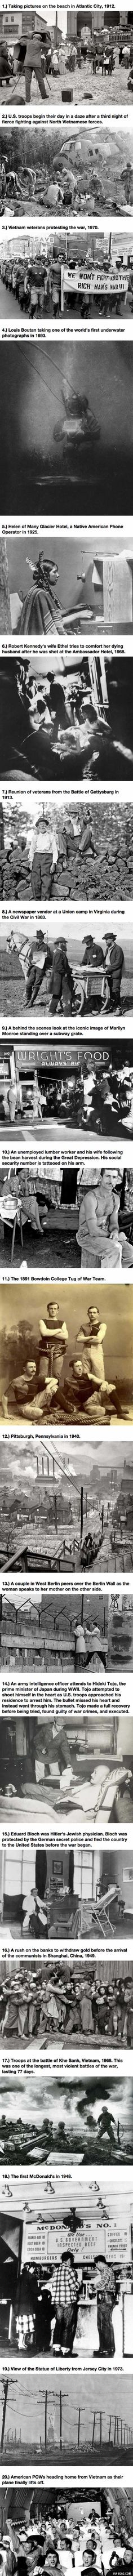 Check Out Some Of These Rare Moments In History... I Had No Idea.